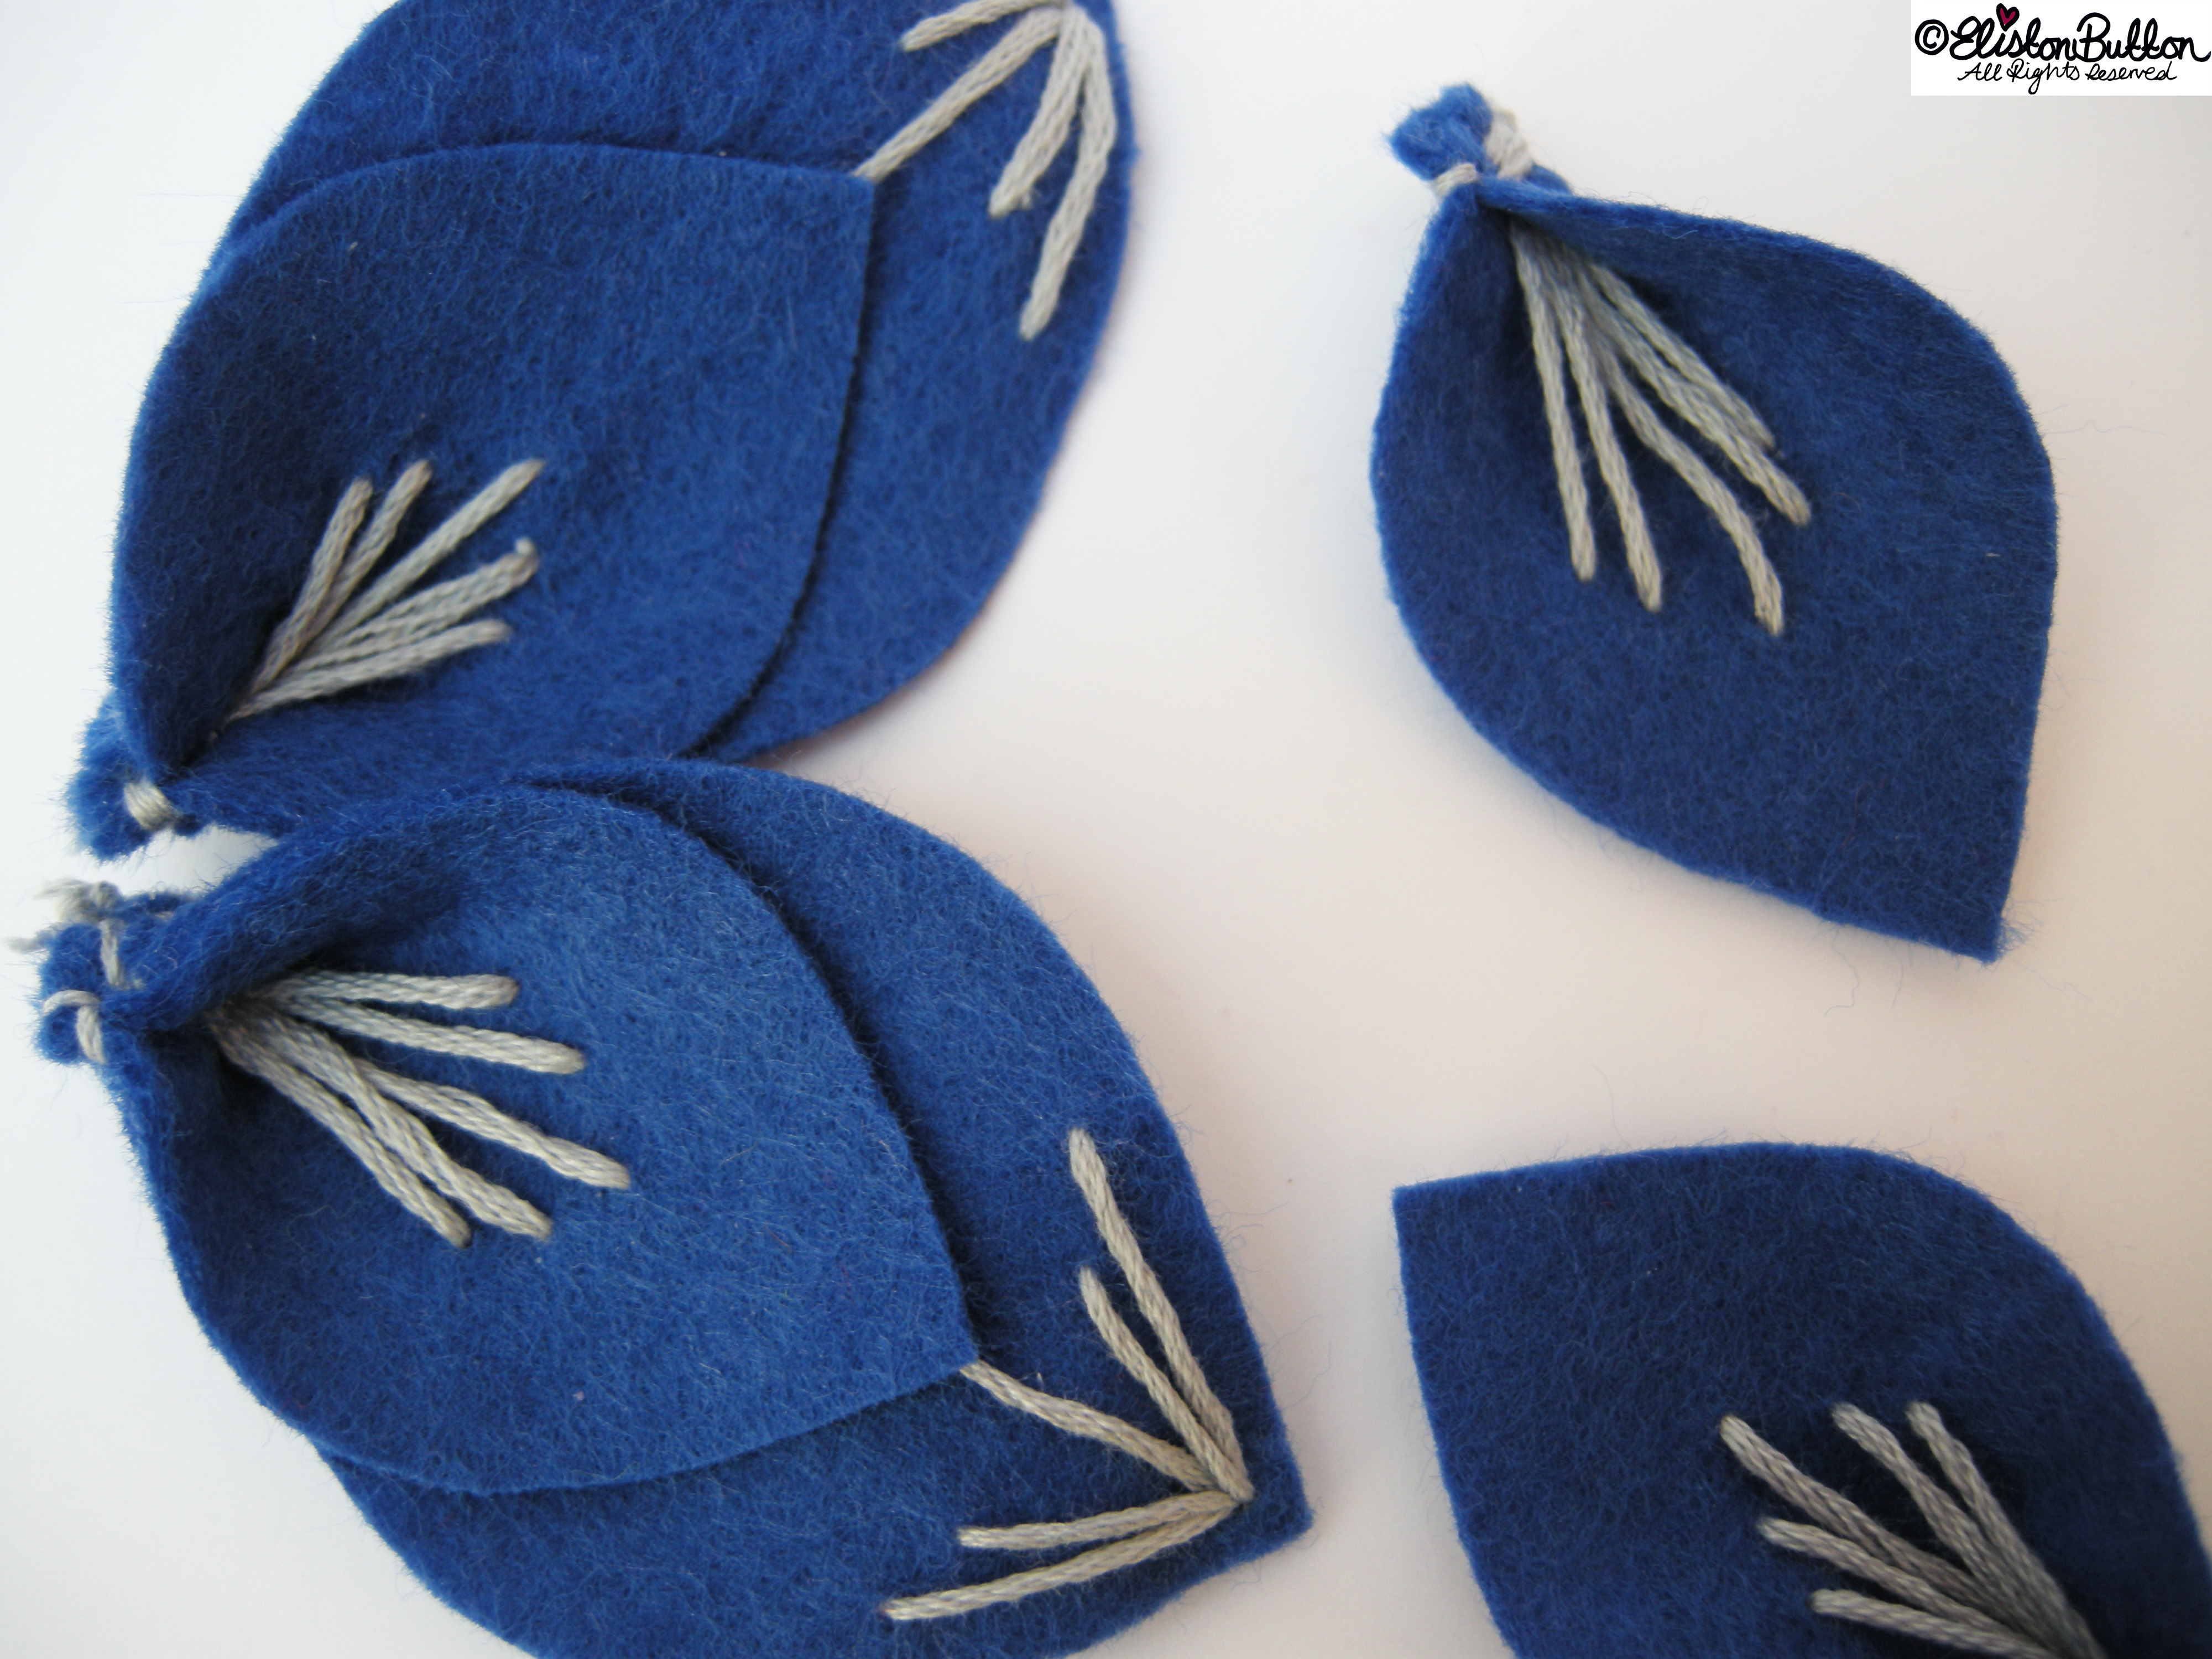 Embroidered Felt Flower Petals - Art Deco Inspired Two Piece Petals in a Row - 27 Before 27 - Out of the Blue at www.elistonbutton.com - Eliston Button - That Crafty Kid – Art, Design, Craft & Adventure.